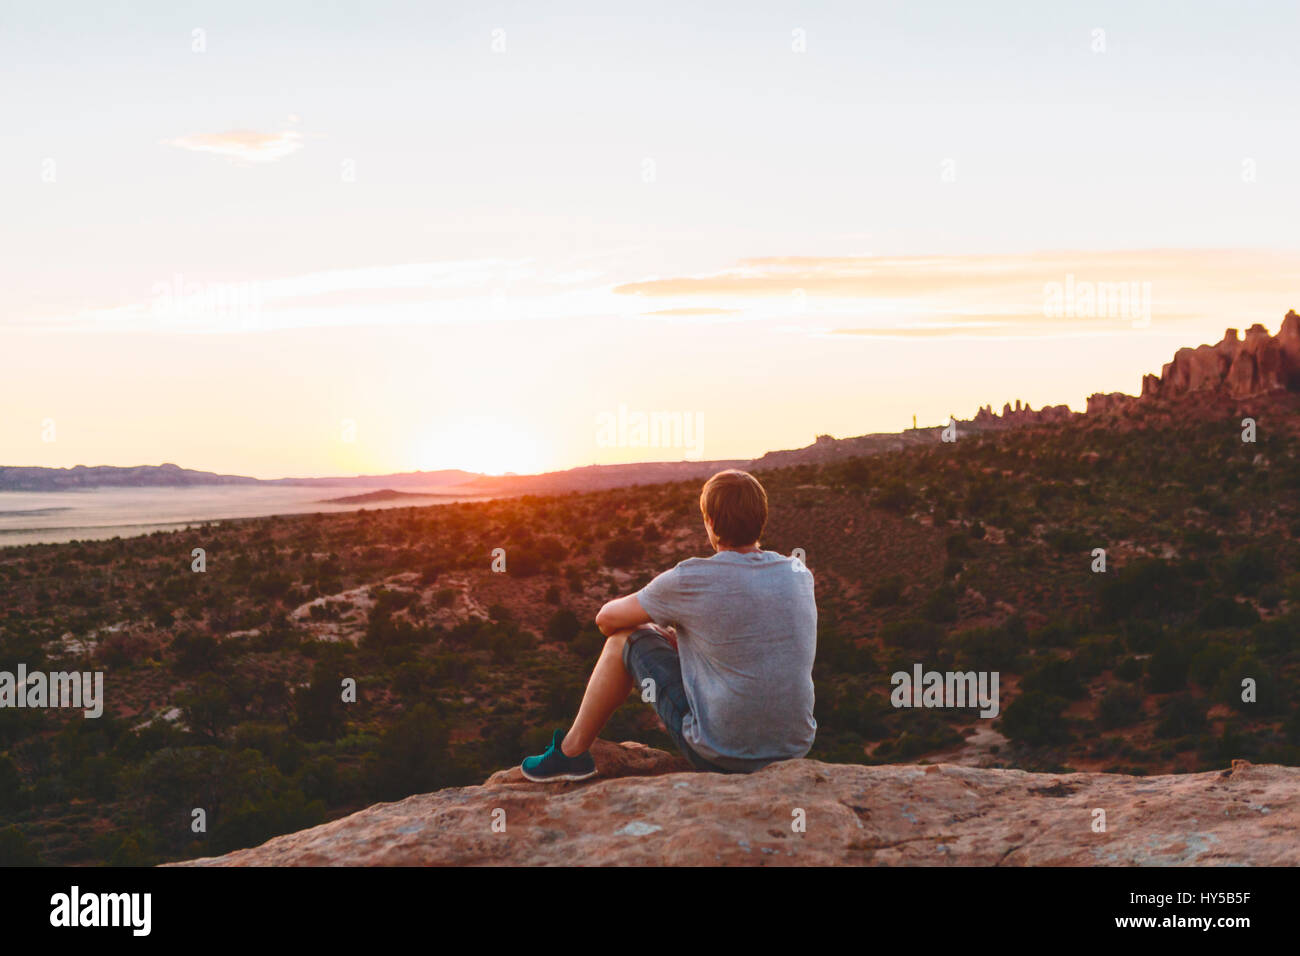 Usa, Utah, Moab, man looking at view dans Arches national park Photo Stock